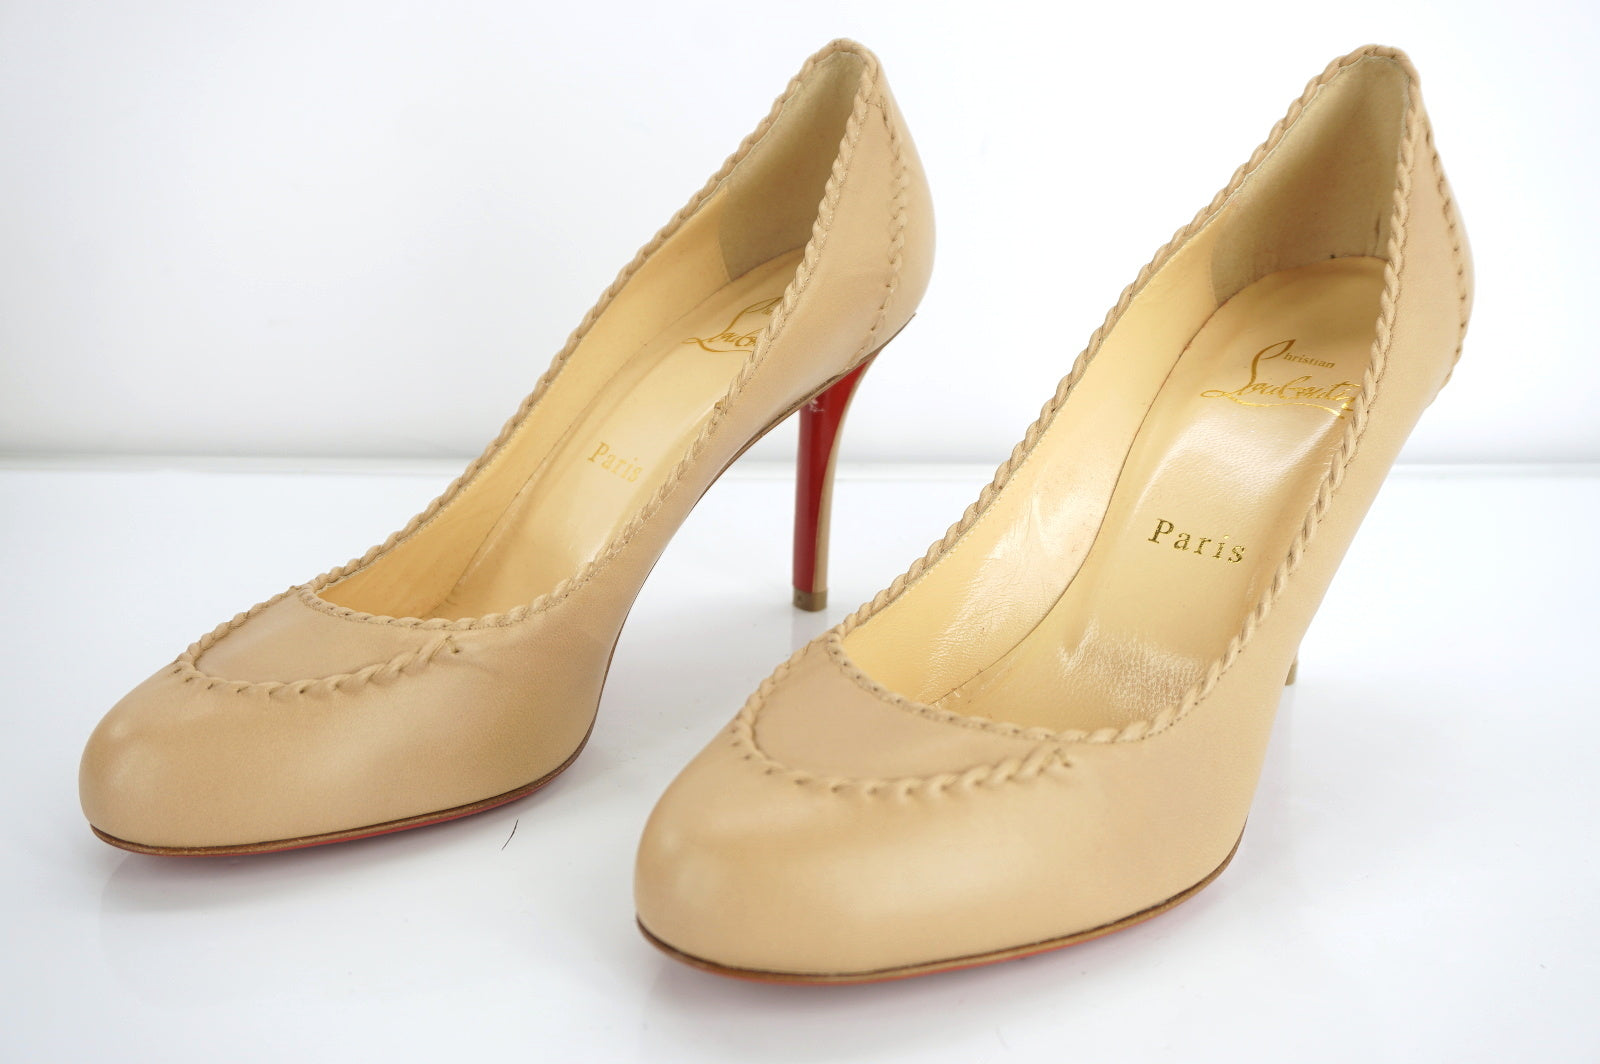 Christian Louboutin Womens Marpelissimo Pump Nude Leather Size 38.5